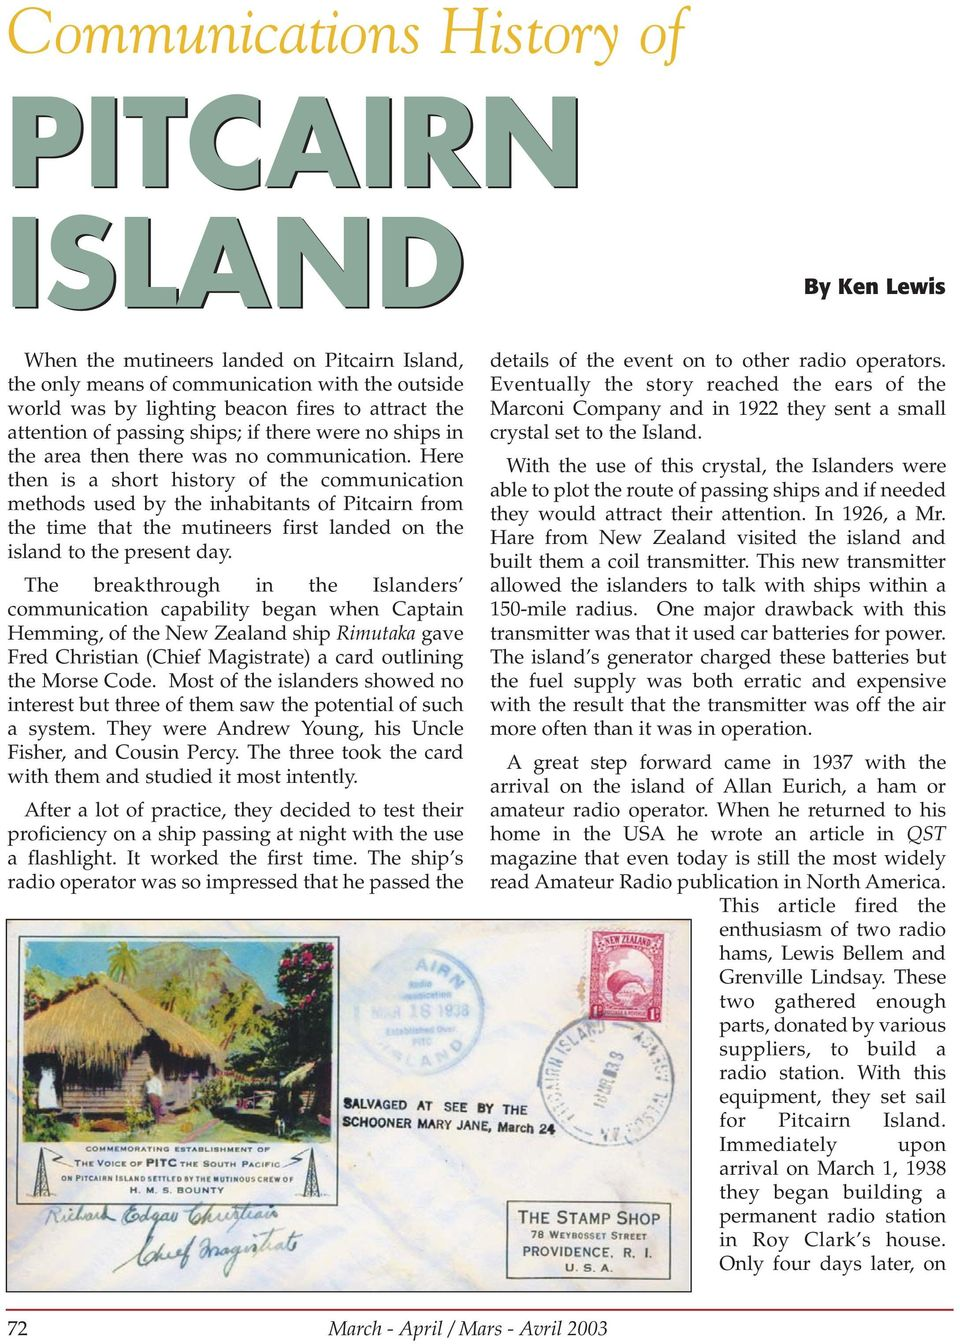 Here then is a short history of the communication methods used by the inhabitants of Pitcairn from the time that the mutineers first landed on the island to the present day.